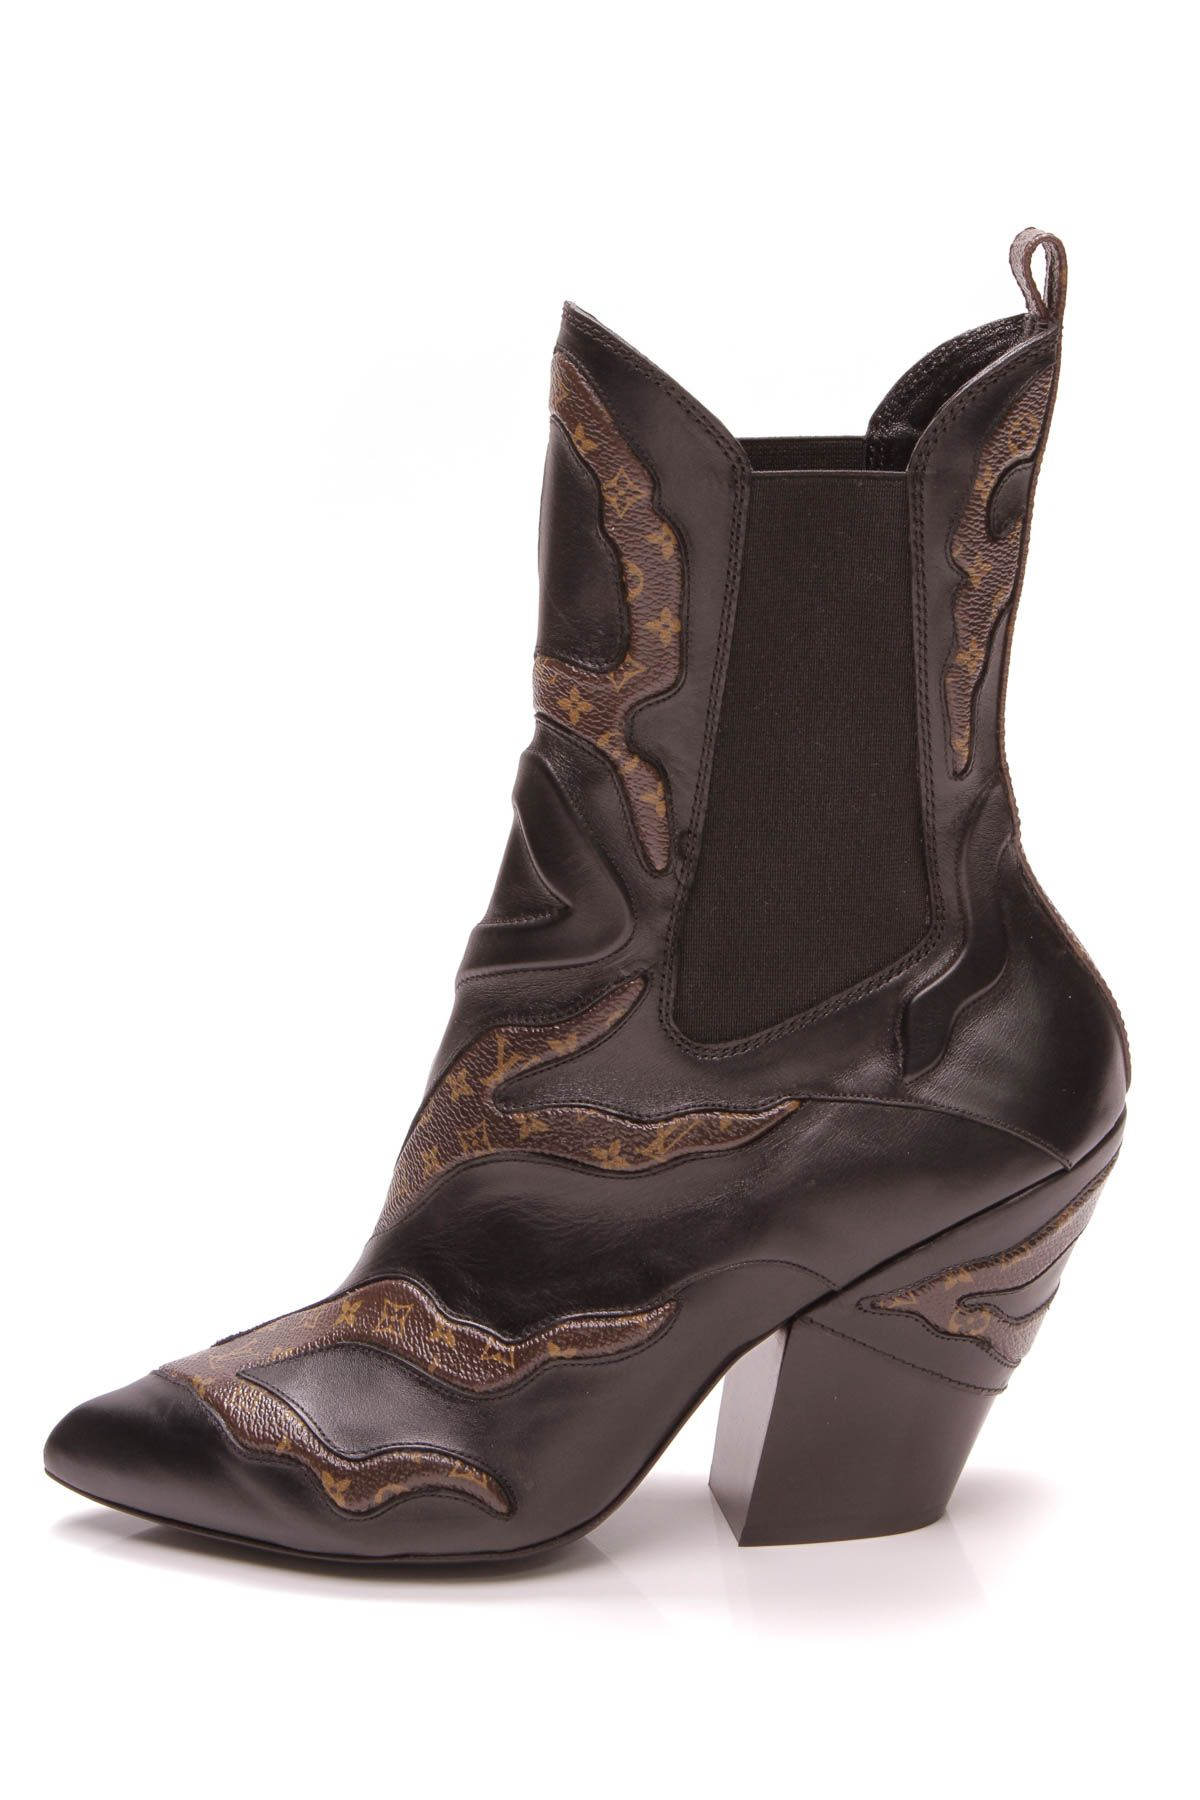 aee9236921271b Fireball Heeled Ankle Boots - Monogram/Leather Size 39 in 2019 ...